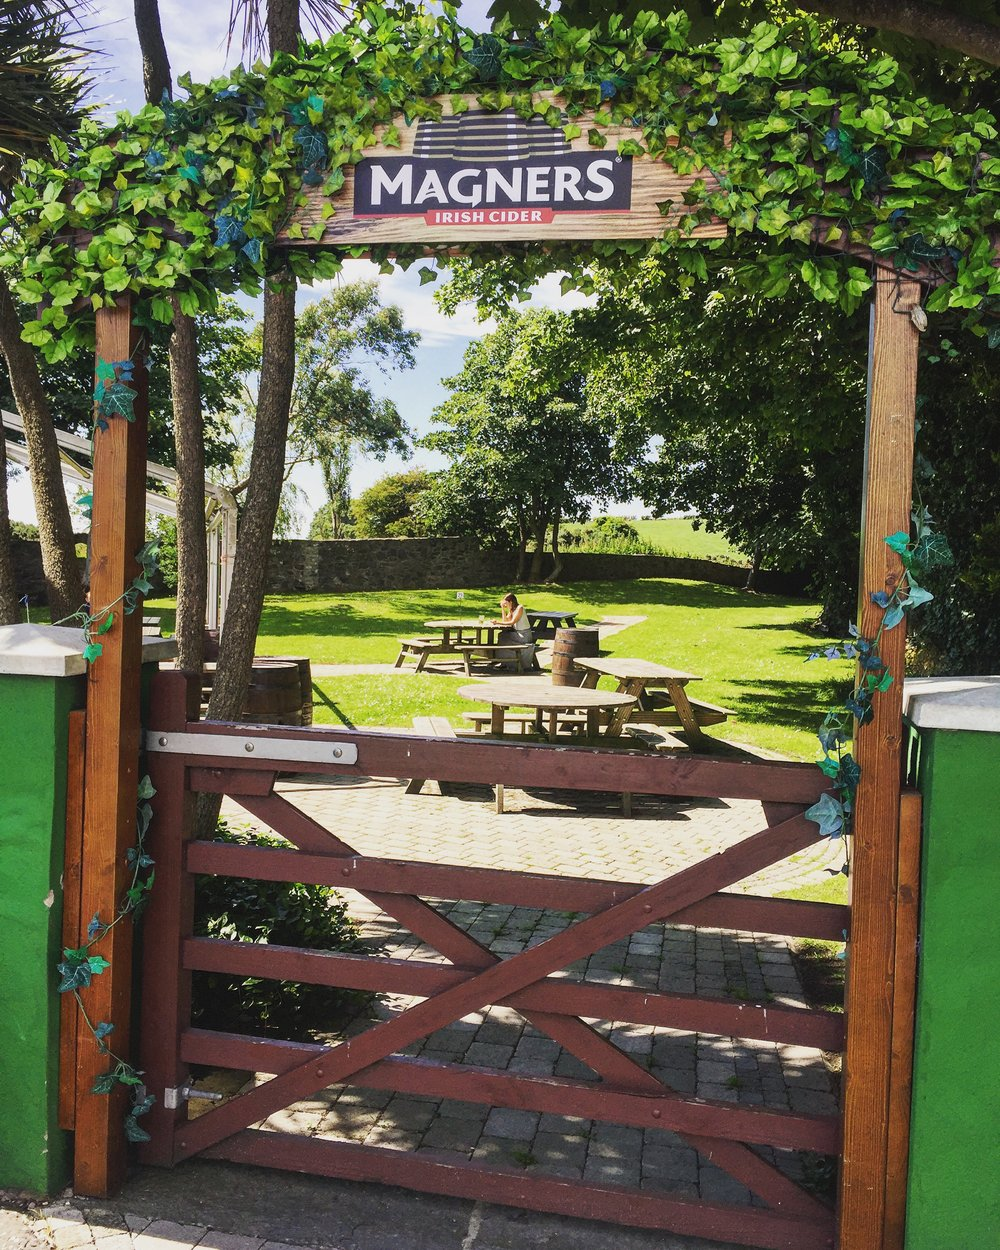 garden_magners_saltwater_brig_bar_menu_kircubbin_blue_sky_sea_strangford_lough_Ards_peninsula_ni_explorer_niexplorer_northern_ireland_blog.jpg